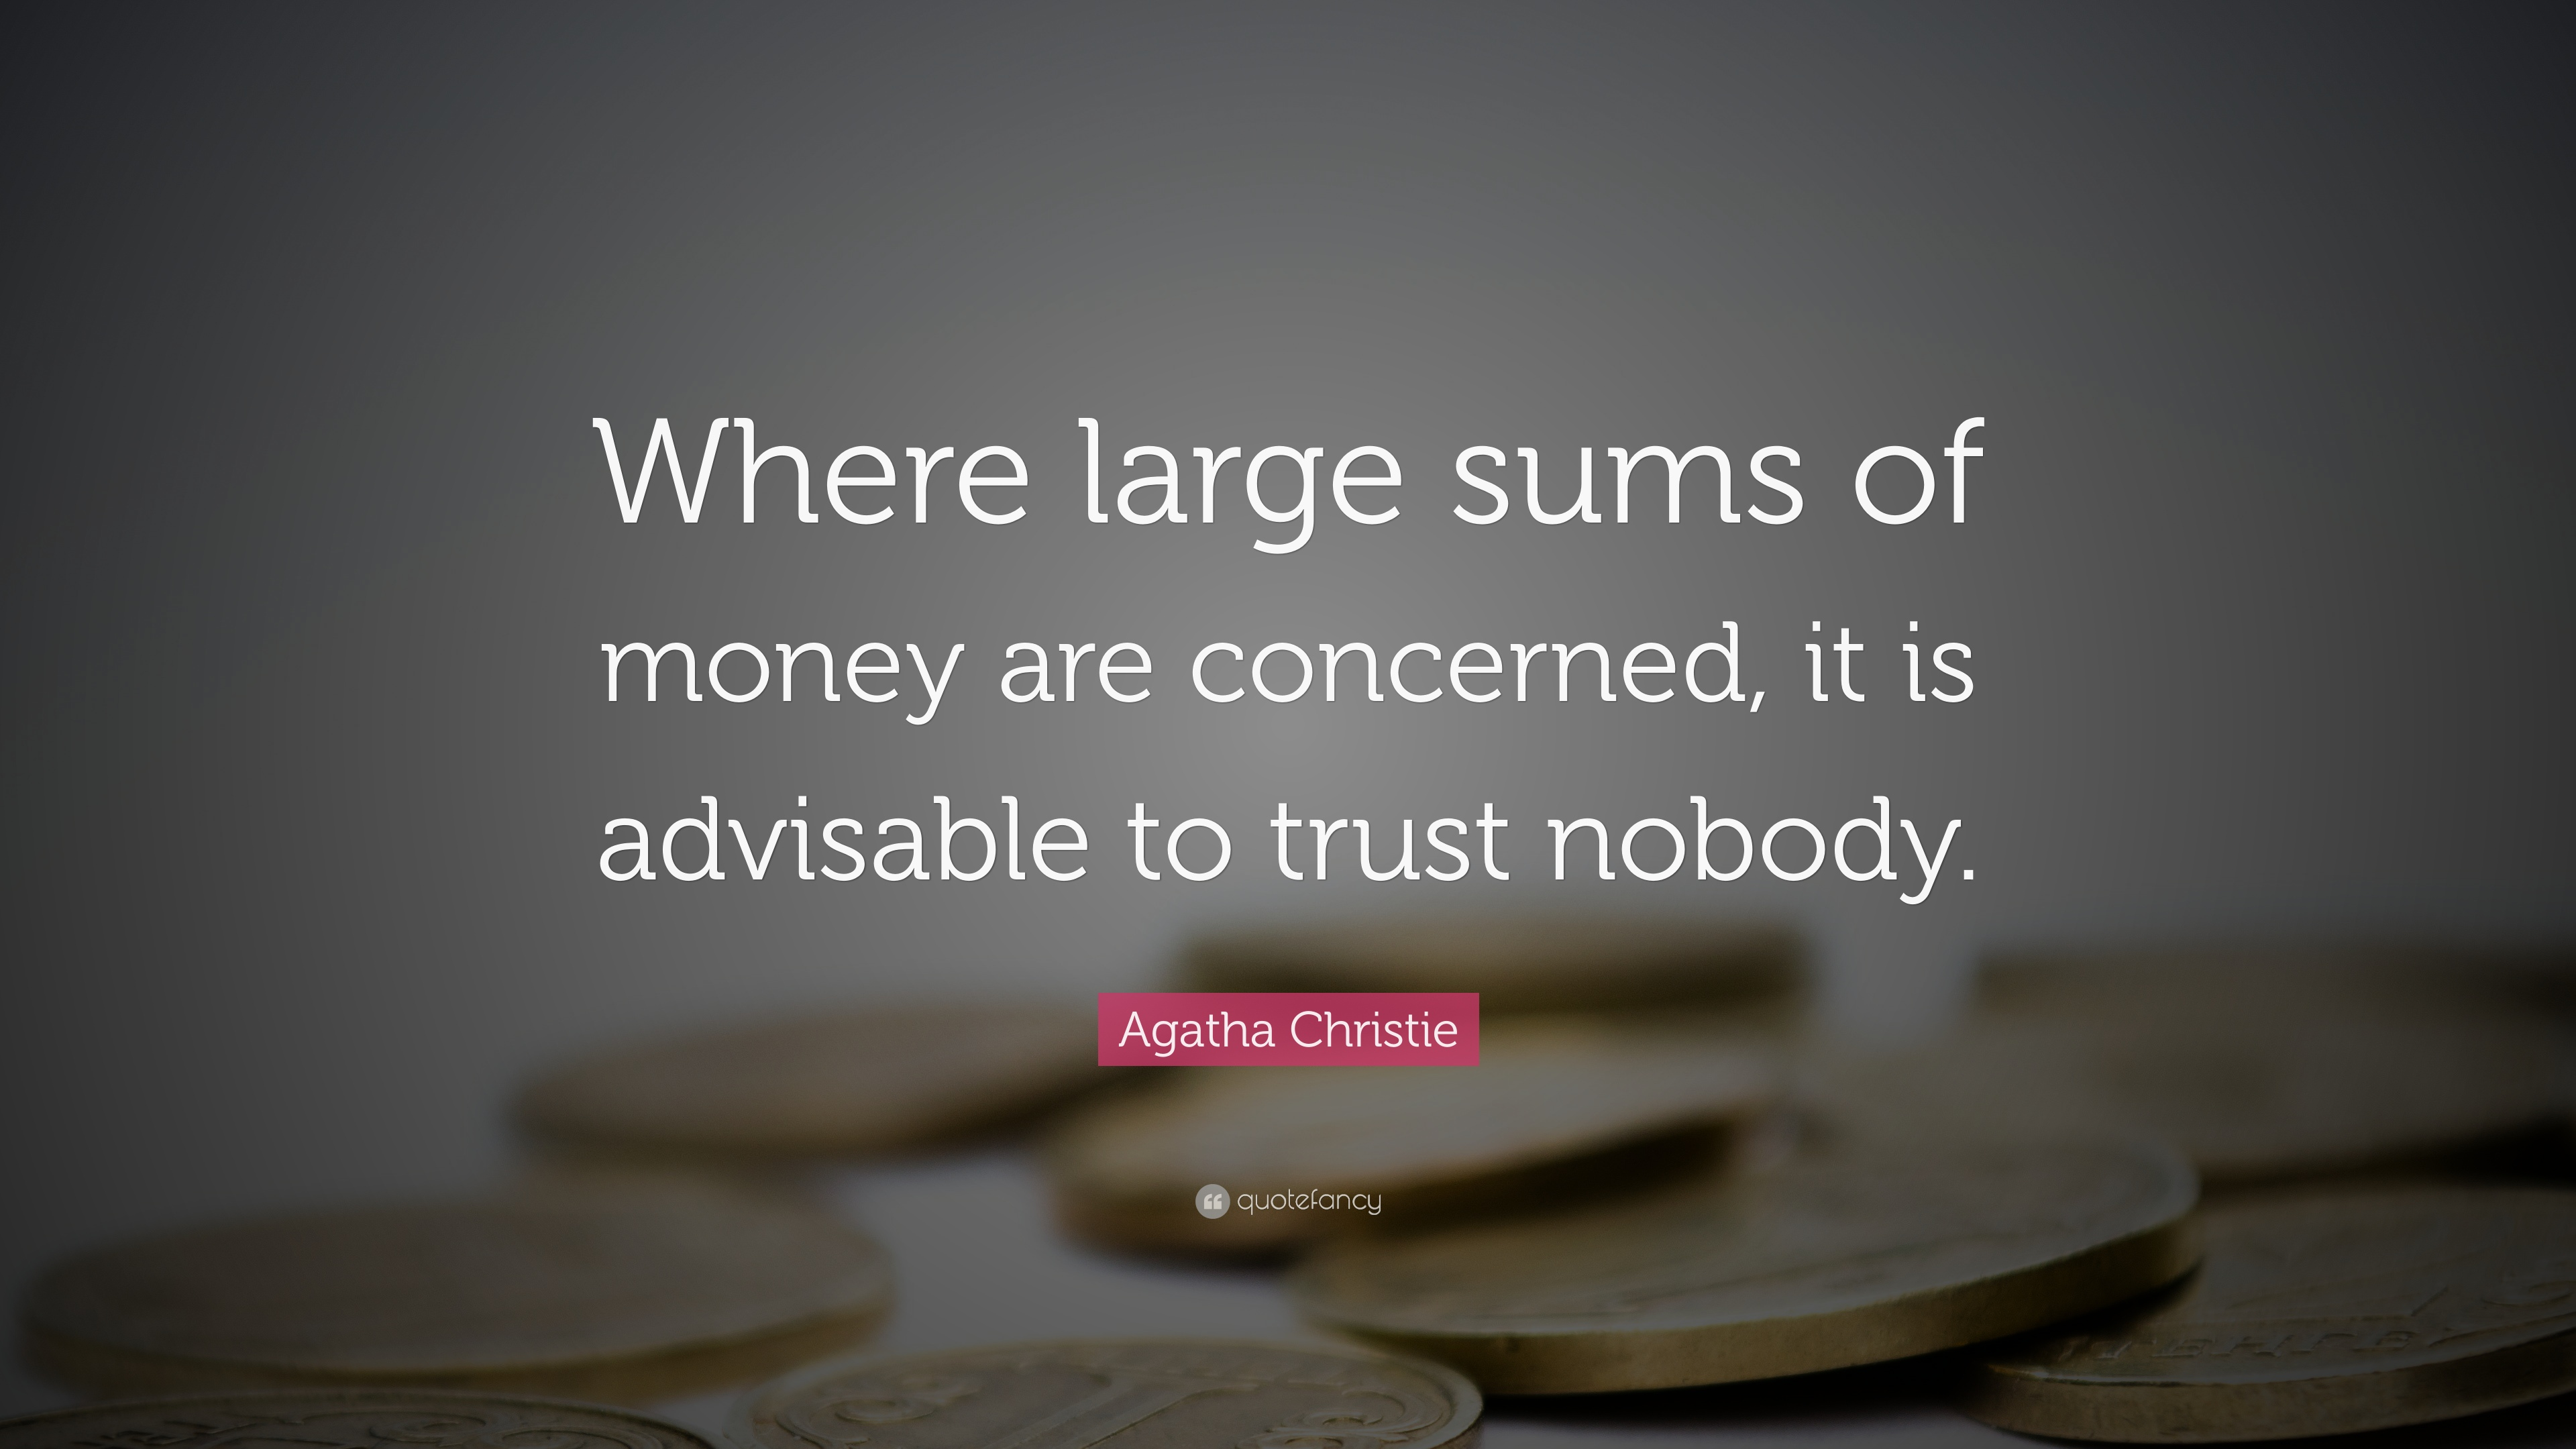 Quotes About Money: U201cWhere Large Sums Of Money Are Concerned, It Is  Advisable